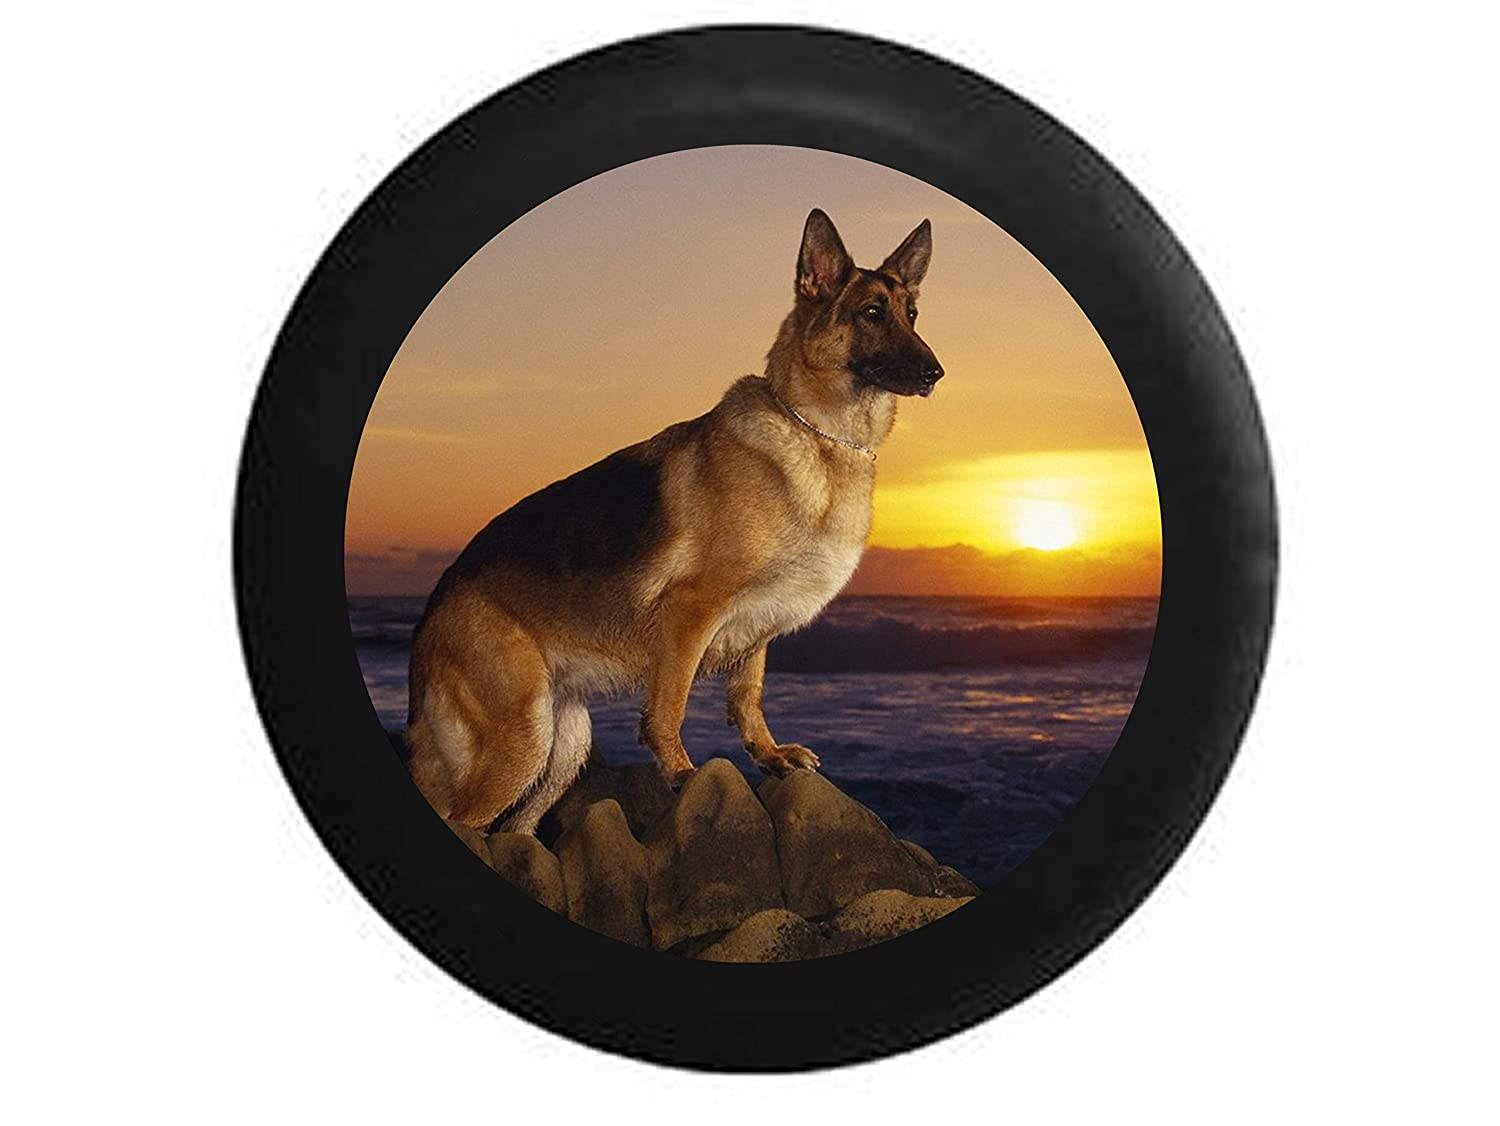 Full Color German Sheppard Dog pearched on Rocks overlooking the Water Sunset Spare Tire Cover Black 35 in Pike Outdoors